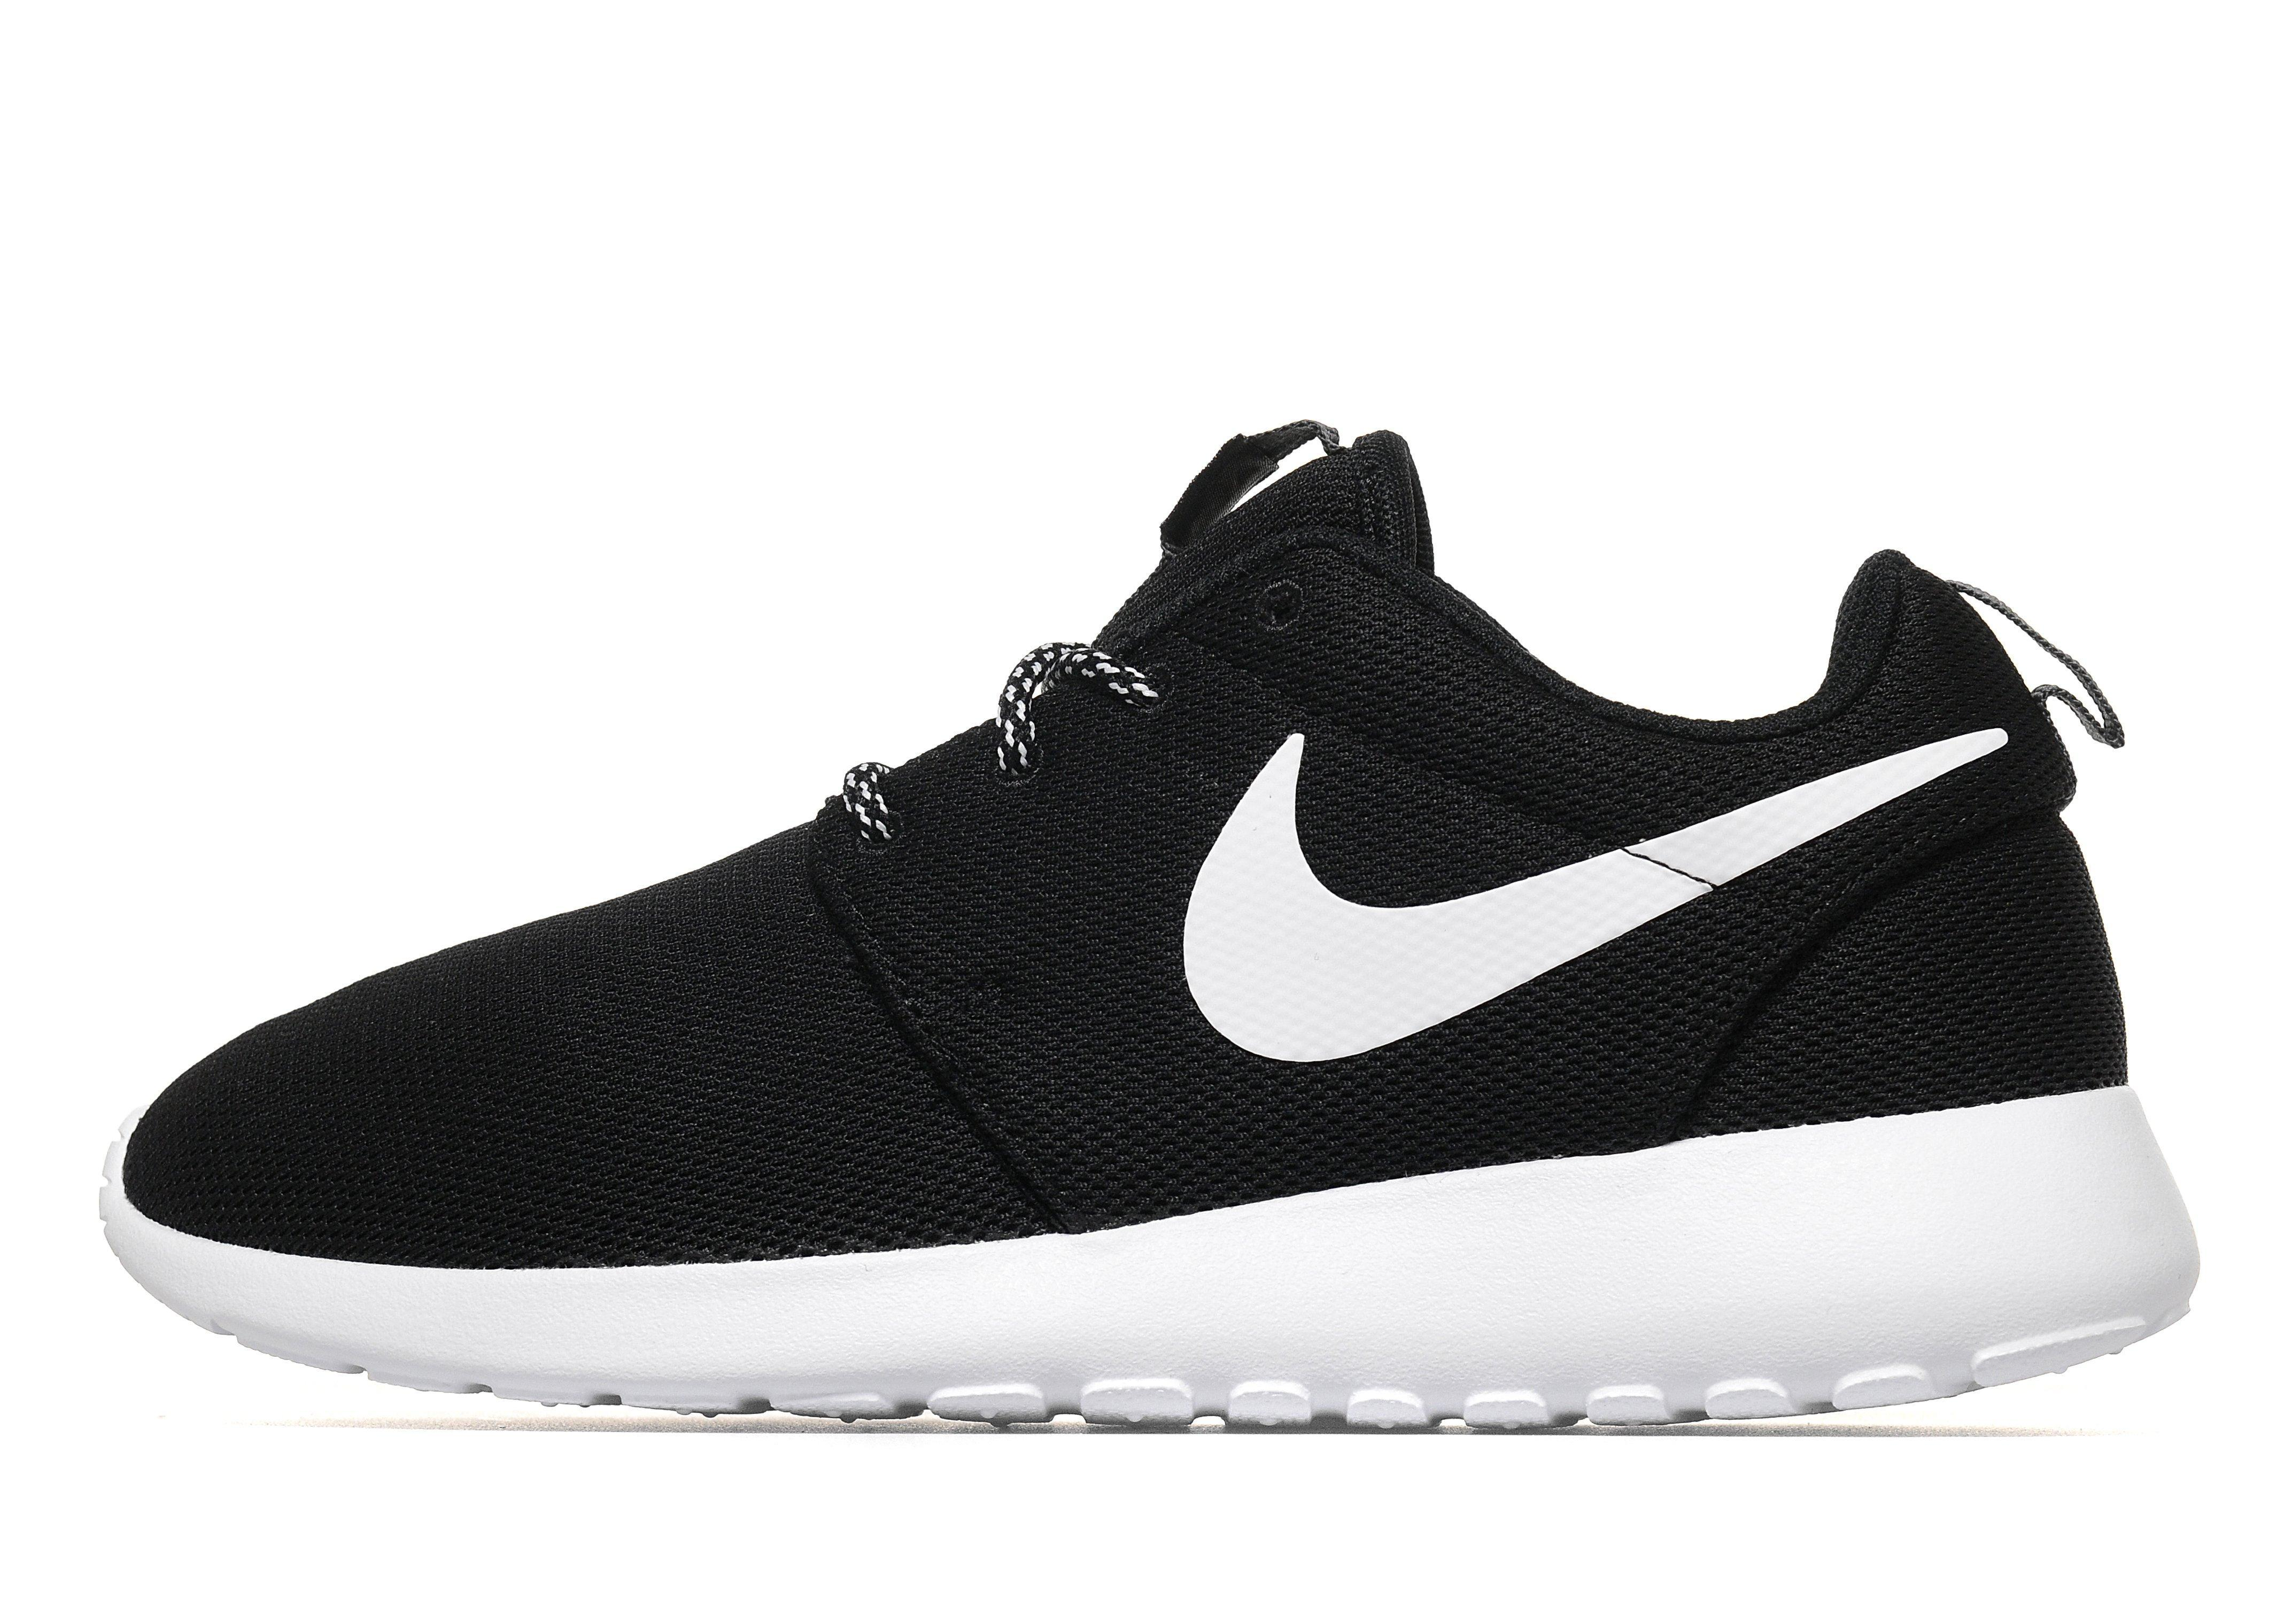 Nike Roshe One in Black